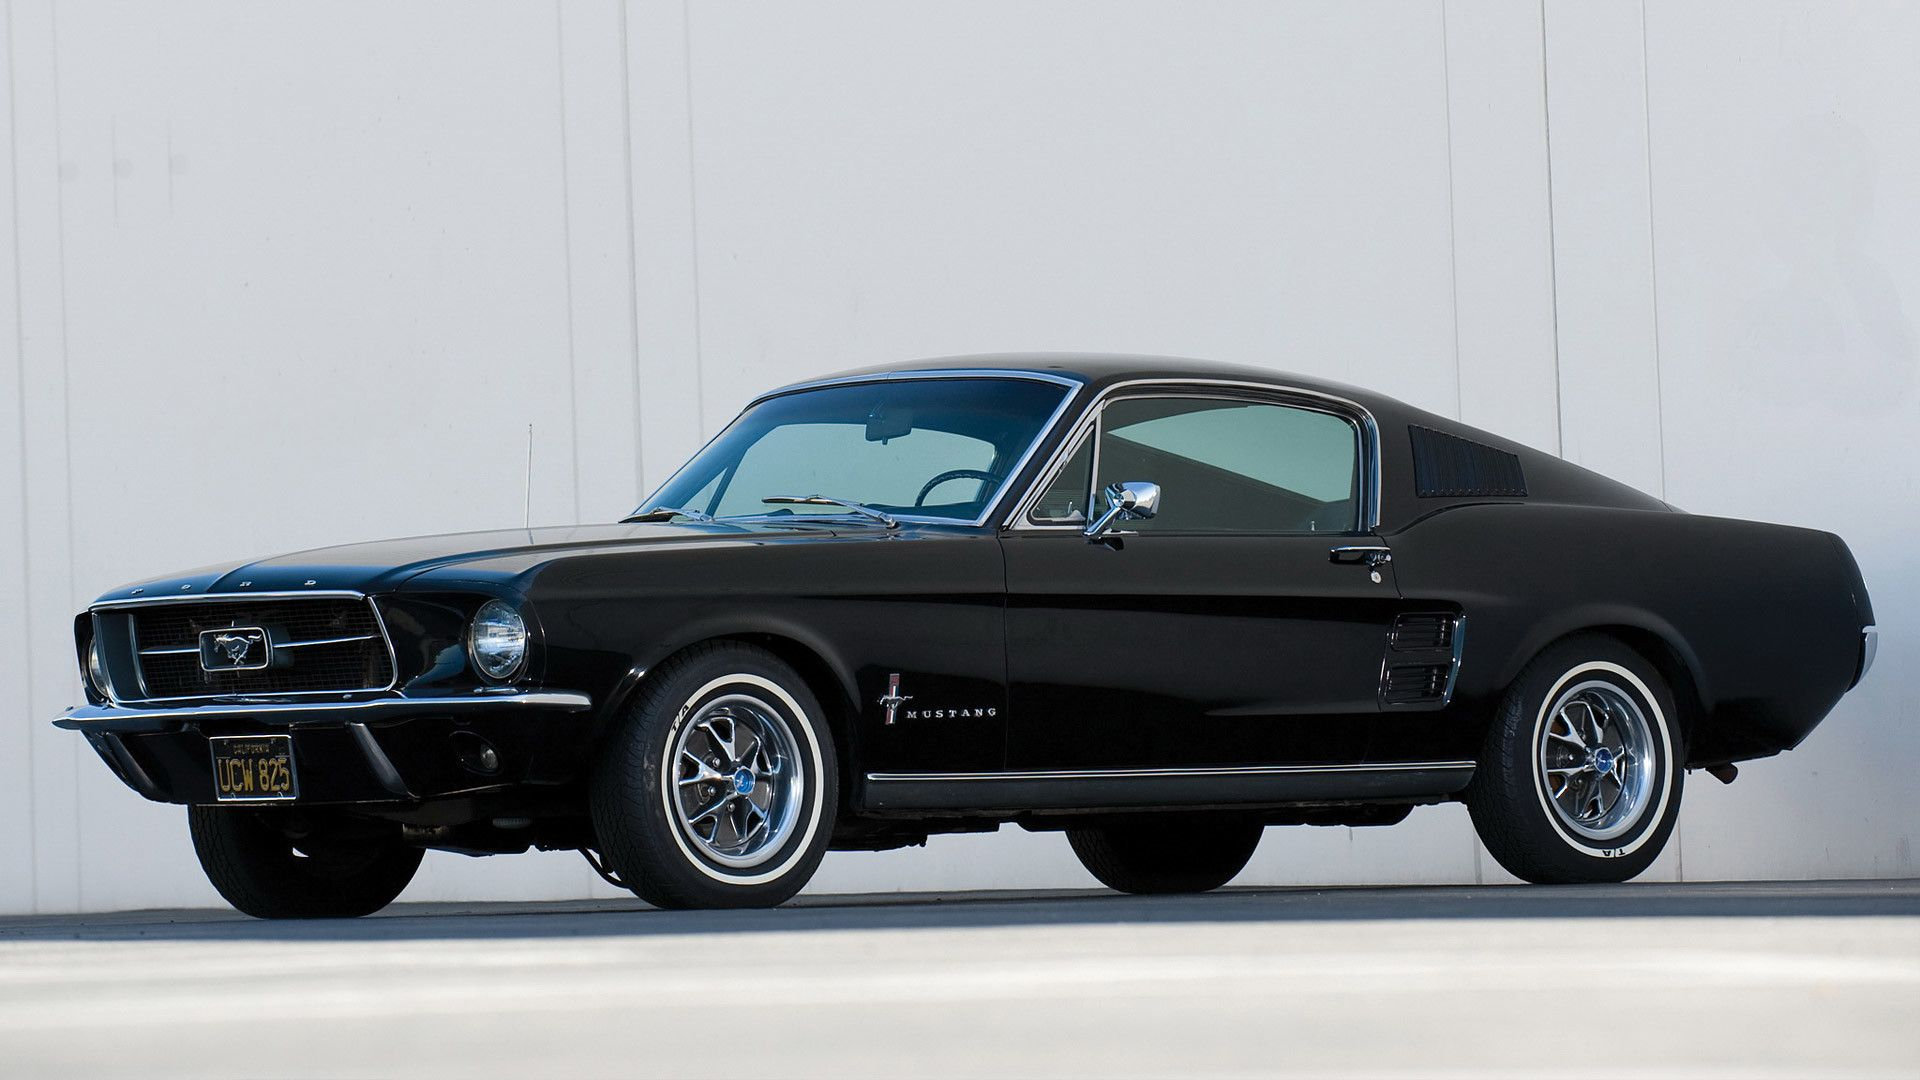 Res 1920x1080 1967 Ford Mustang Picture Ford Mustang Fastback Ford Mustang Mustang Fastback